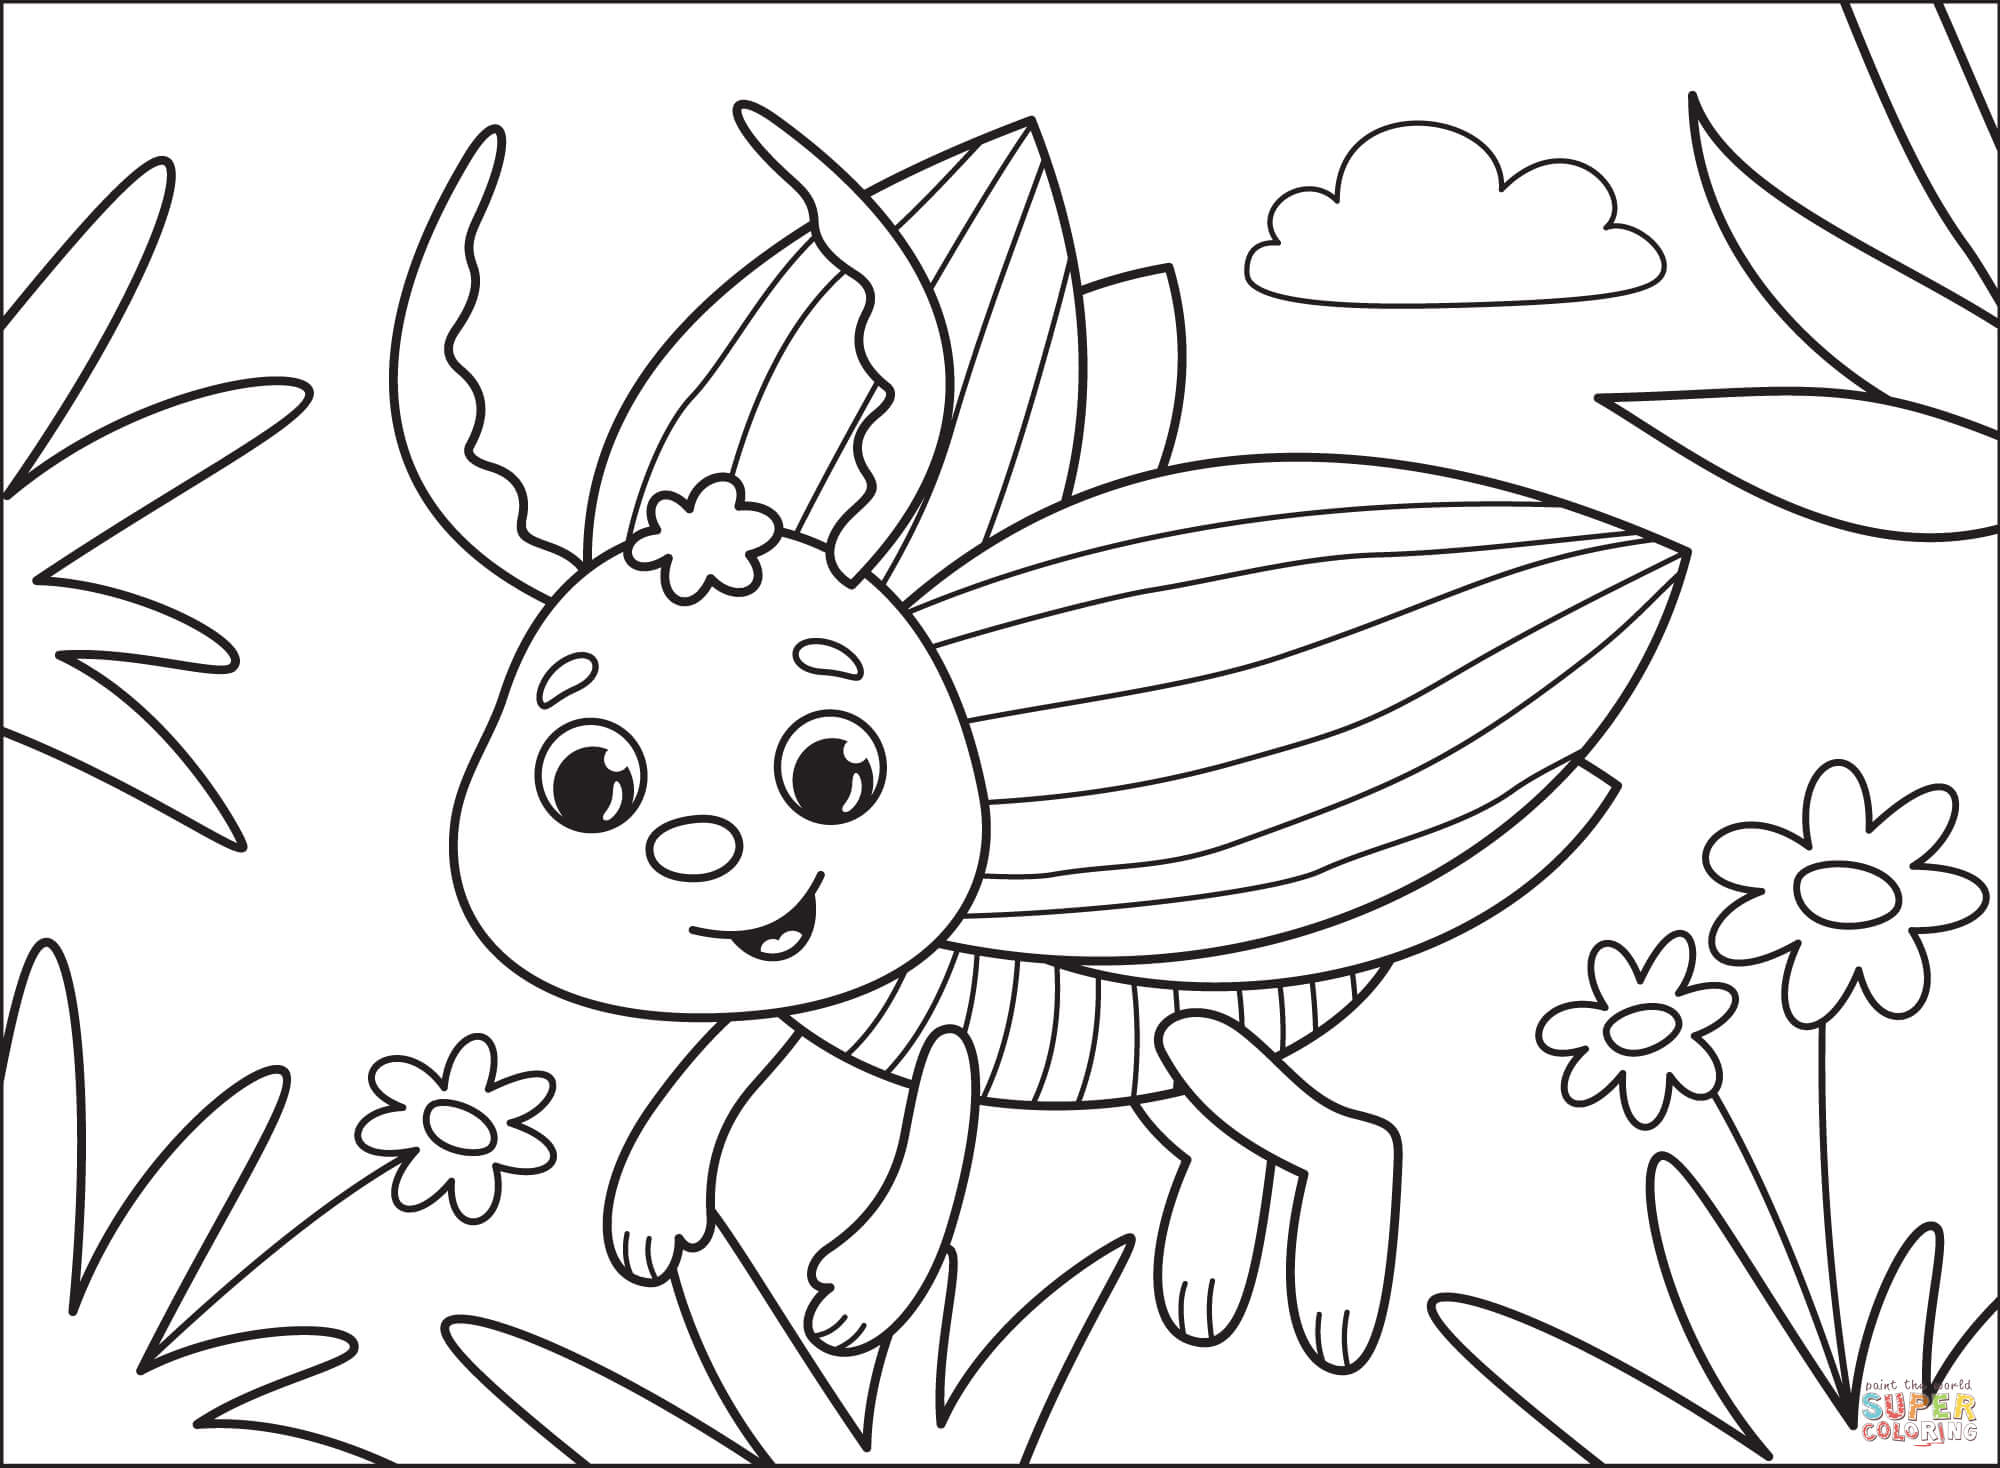 bug coloring free printable wall safe crayons poster project for kids sheet advent coloring pages Bug Coloring Page